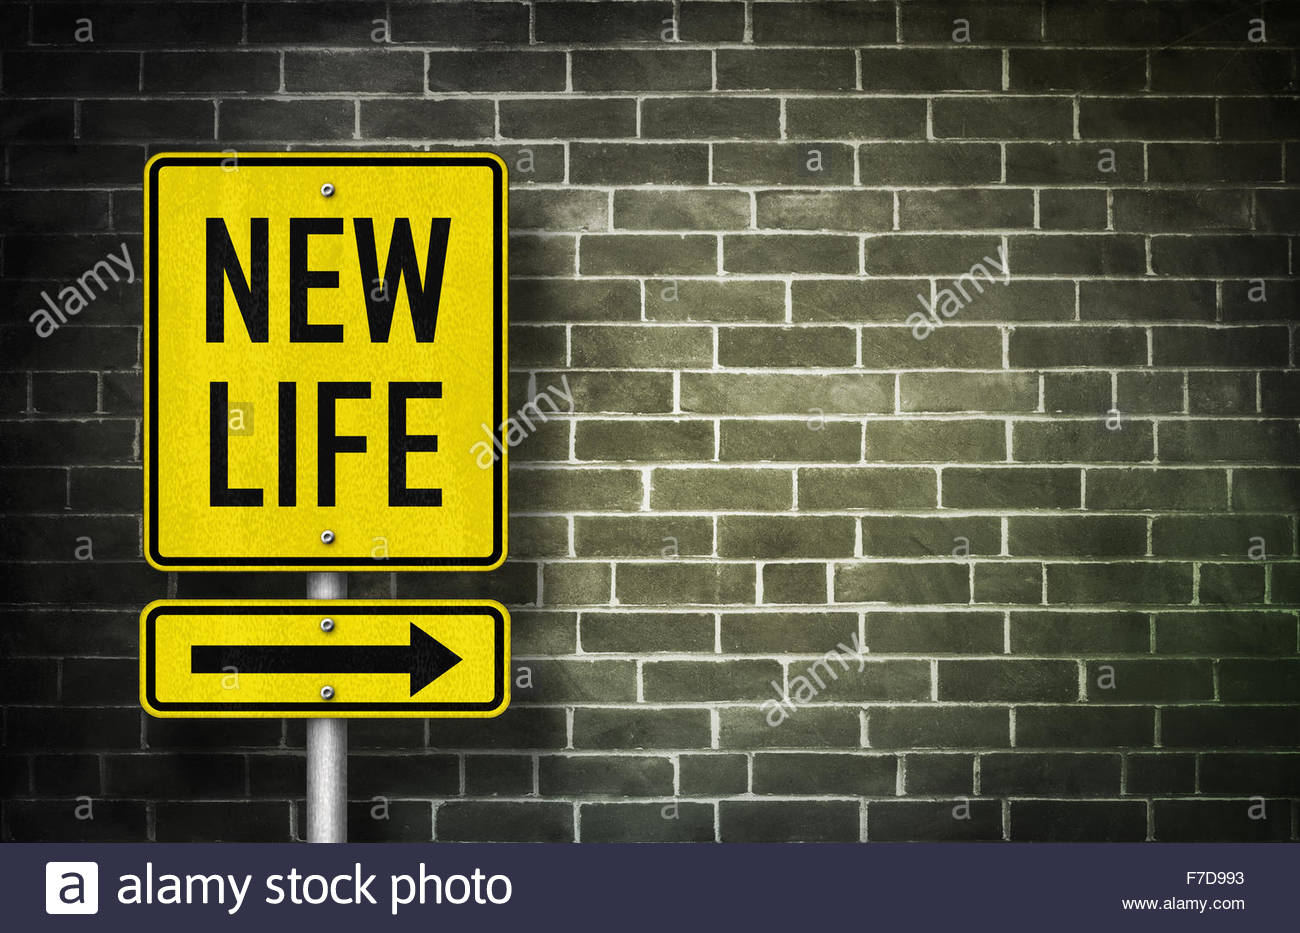 New Life - road sign illustration - Stock Image